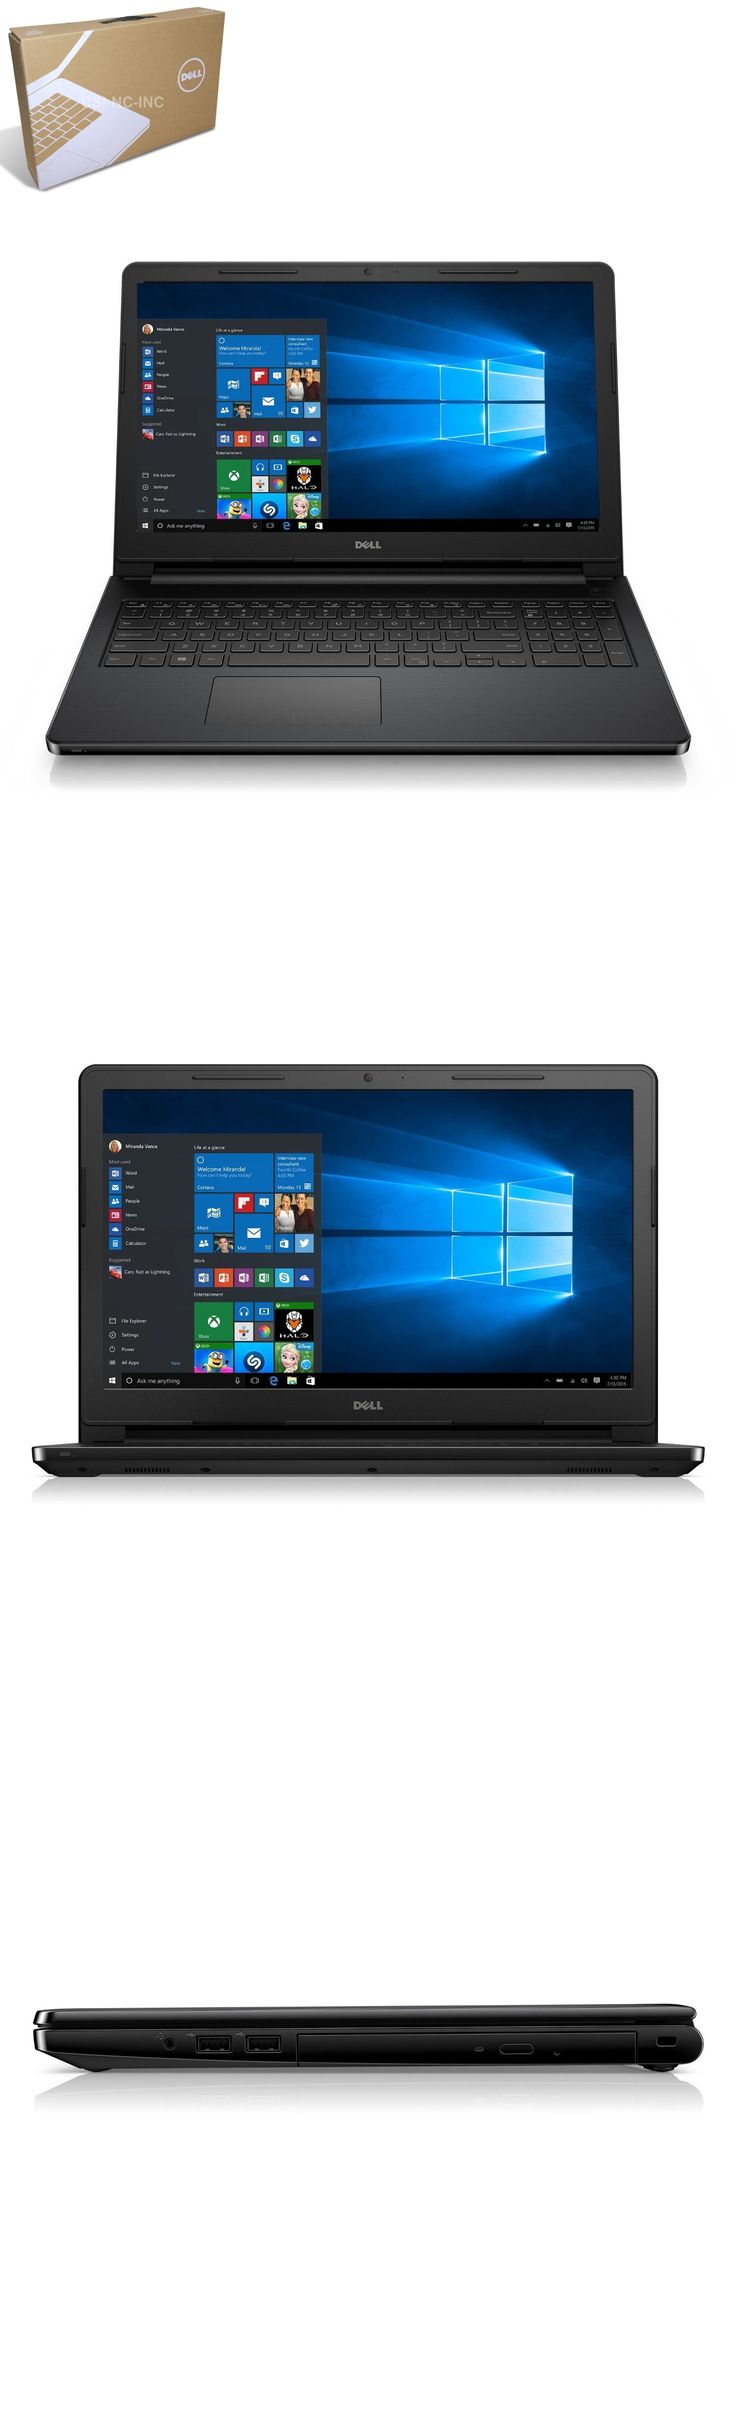 computers: New Dell Inspiron 15 3000 3552 N3060 4Gb 500Gb Wifi Hdmi Dvdrw Windows 10 -> BUY IT NOW ONLY: $289.99 on eBay!